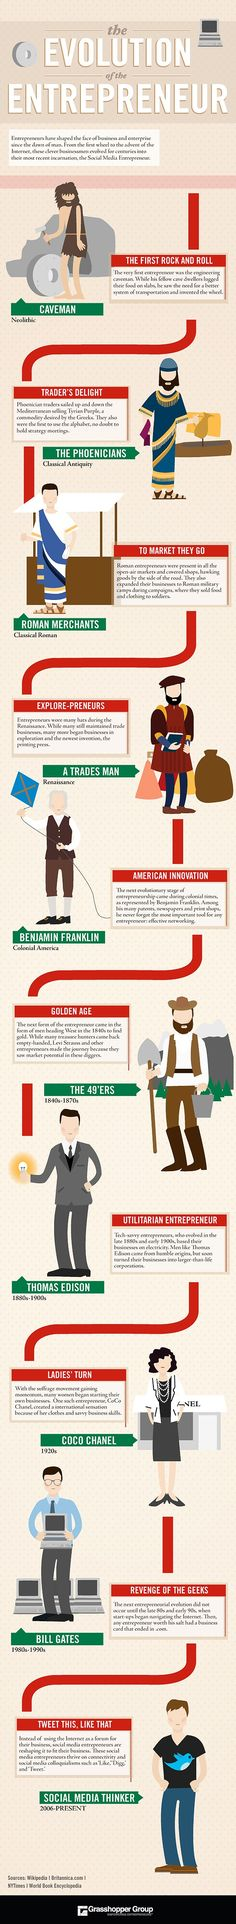 The Evolution Of The Entrepreneur [Infographic] Evolution of the Entrepreneur , from cavemen to social media thinkers! (Great job on the infographic Grasshopper) Start Up Business, Starting A Business, Business Tips, Business Entrepreneur, Business Infographics, Business Baby, Business Professional, Social Media Tips, Social Media Marketing